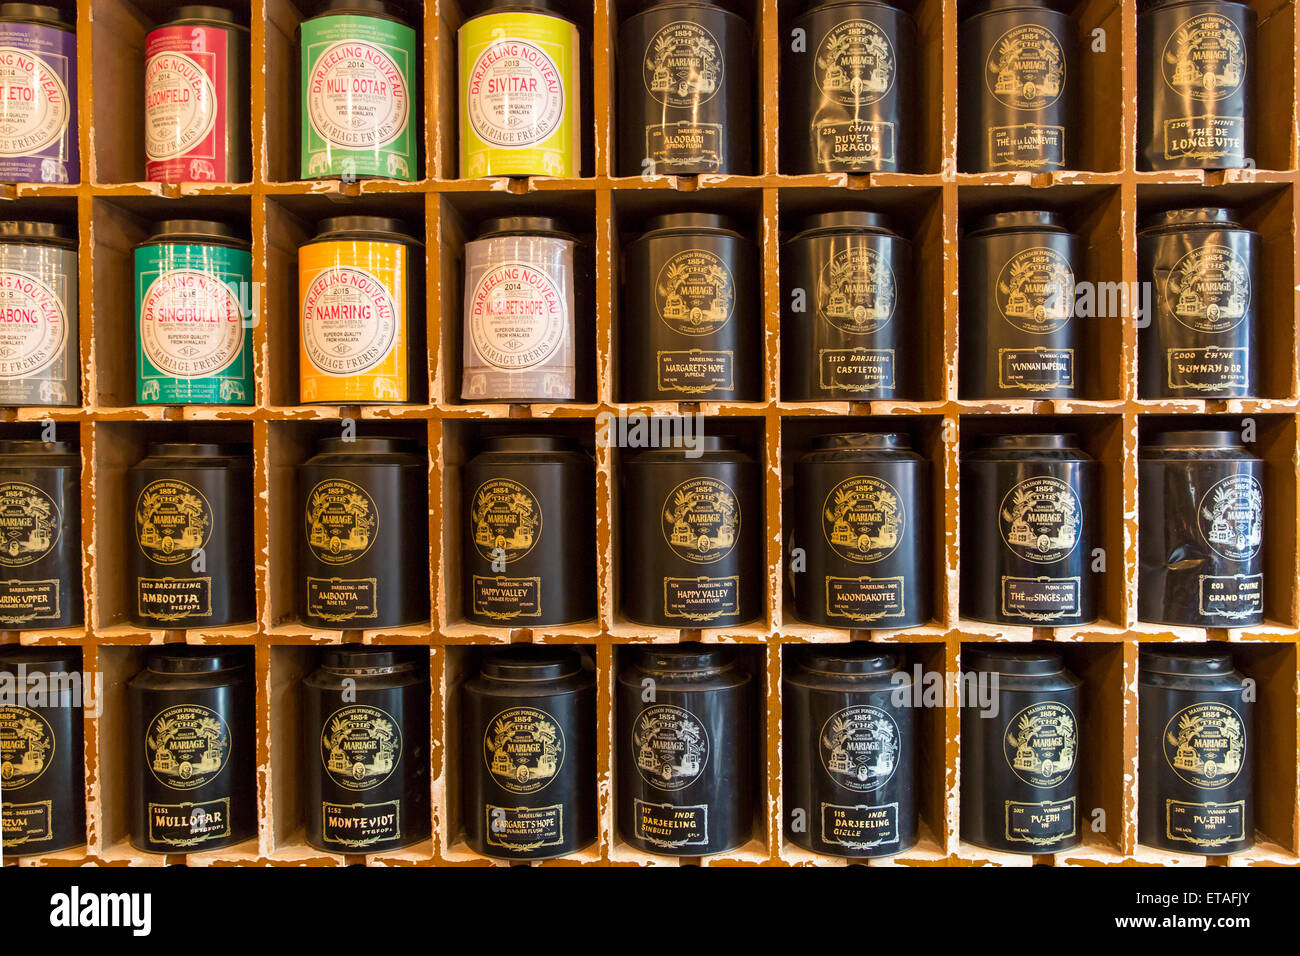 Canisters of tea Wall display at world famous Mariage Freres Salon de The, Marais, Paris, France - Stock Image